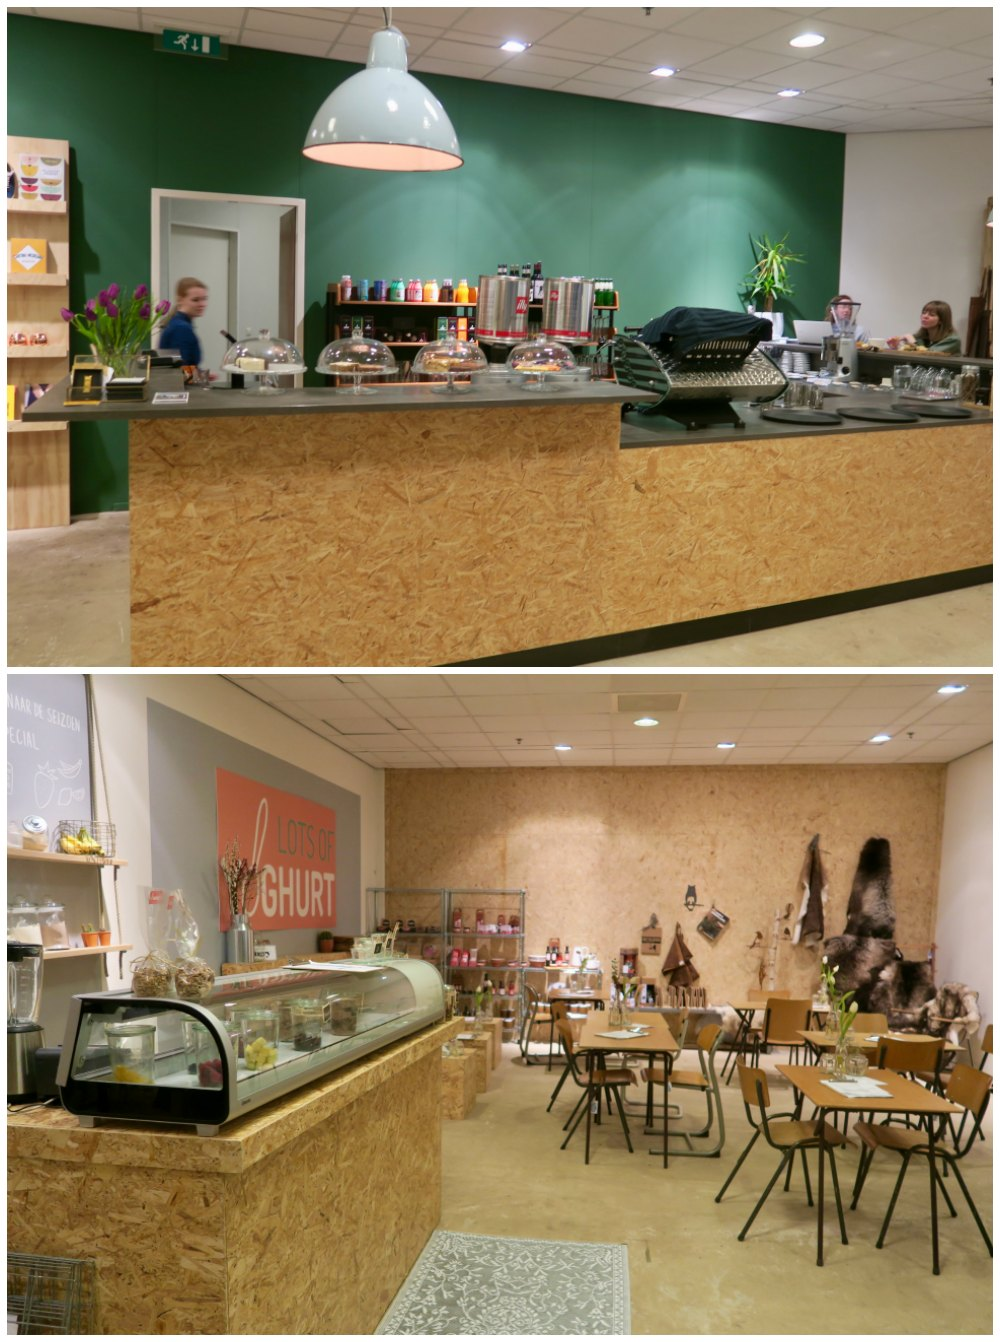 Coffe and lunch at Pistache Zwolle |curlytraveller.com